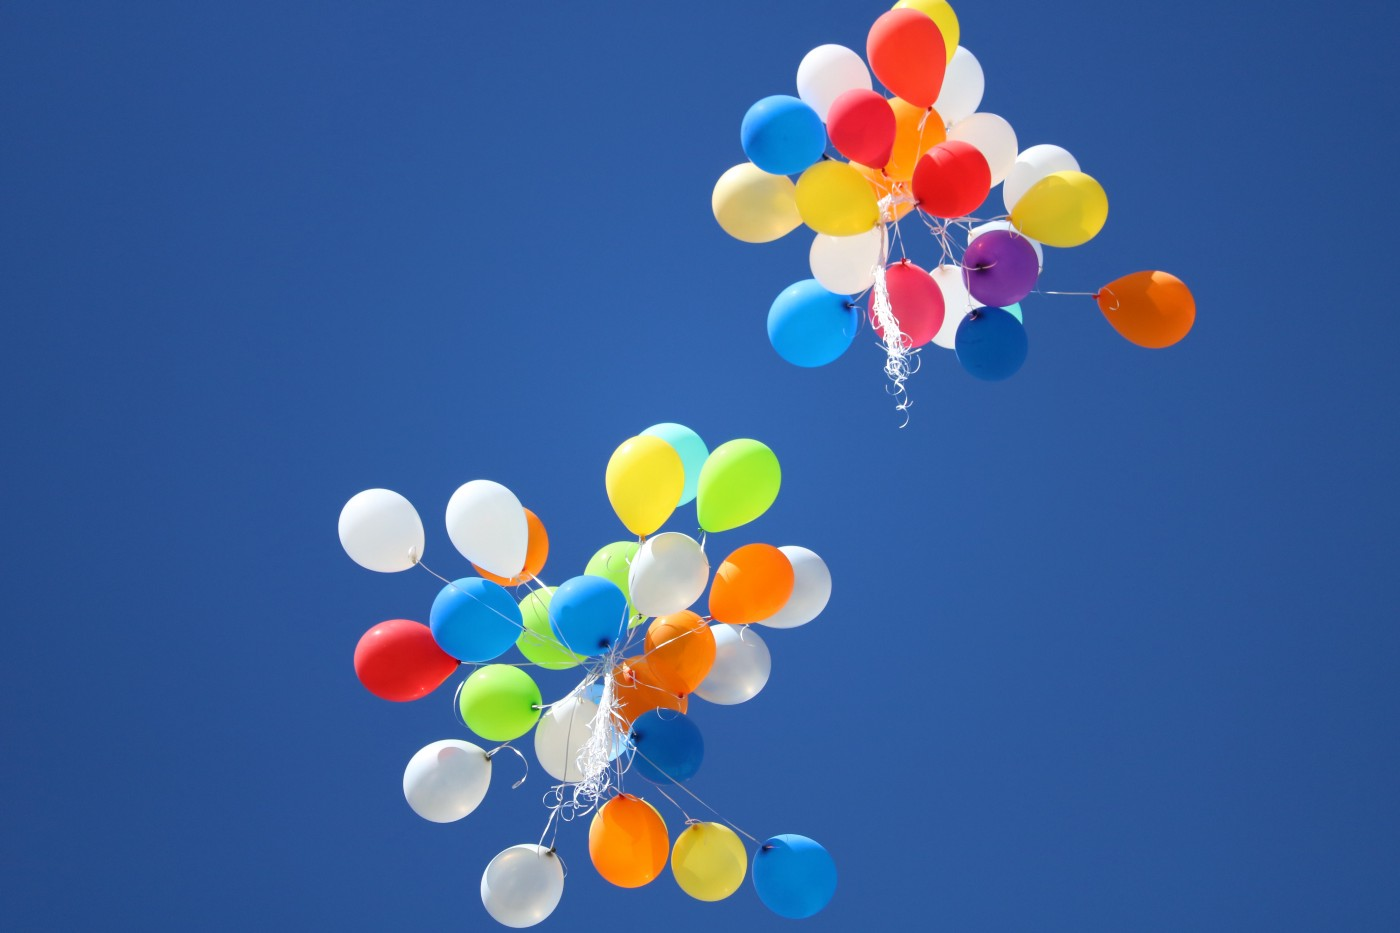 Two bunches of multi-colored balloons released in the sky.